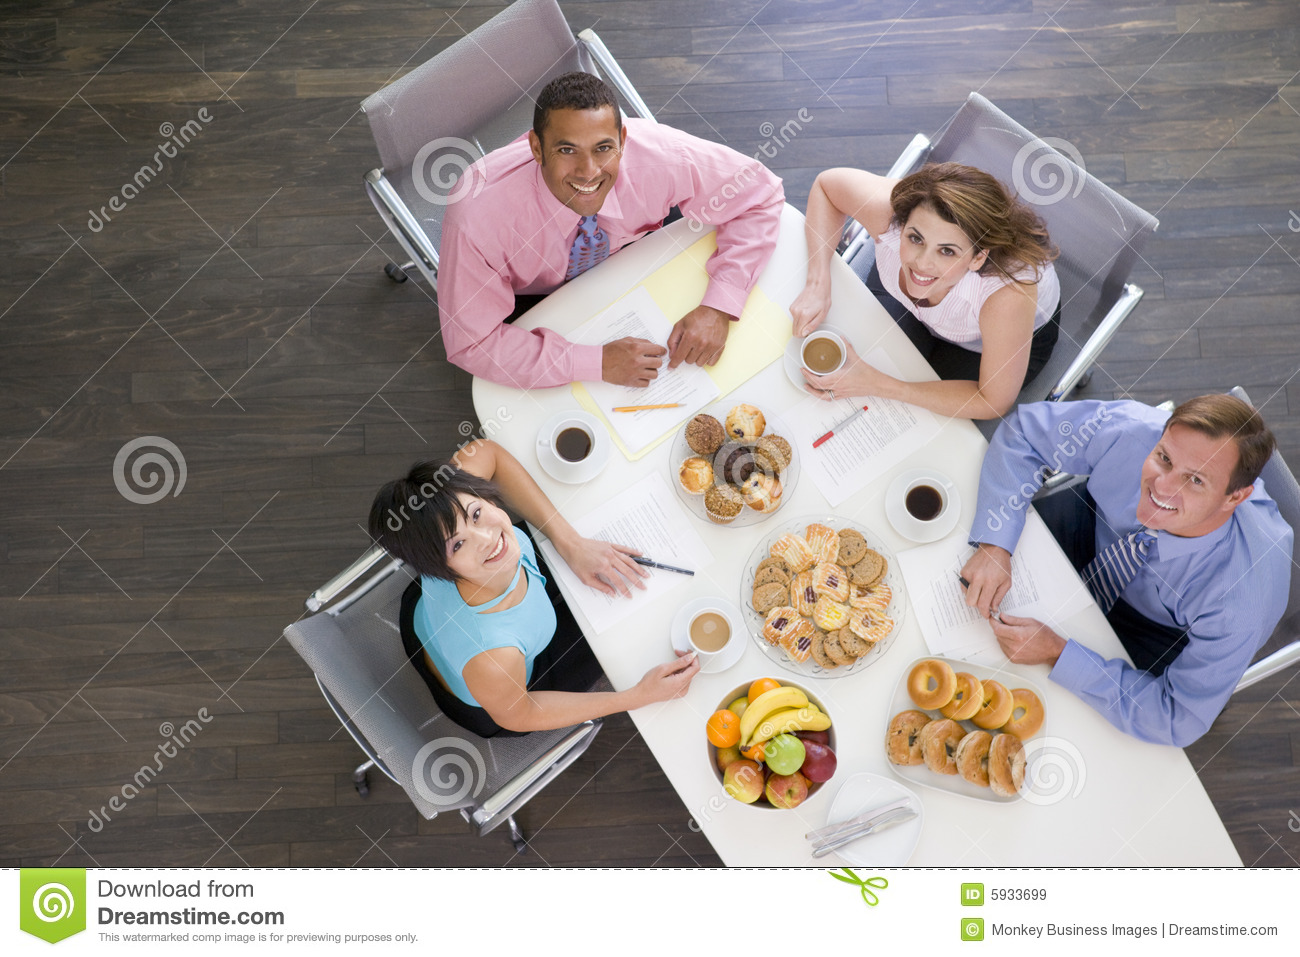 Boardroom businesspeople eating four table